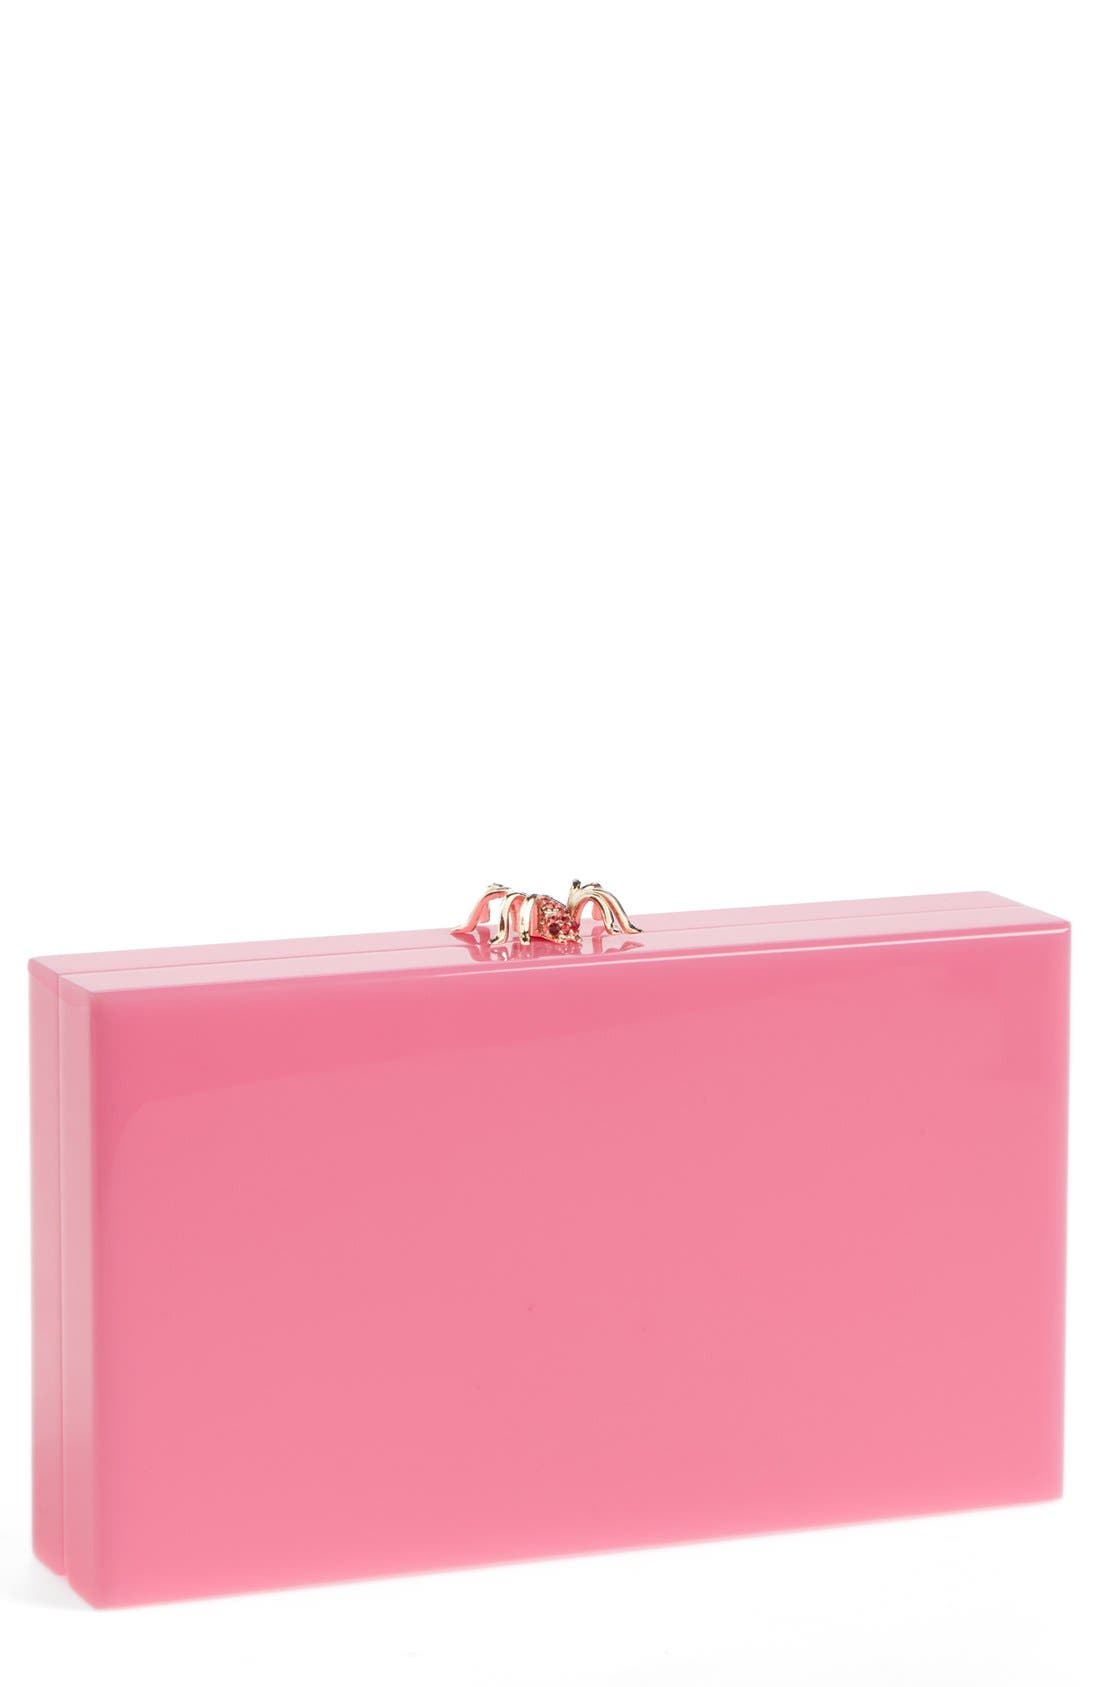 Alternate Image 1 Selected - Charlotte Olympia Spider Clasp Clutch